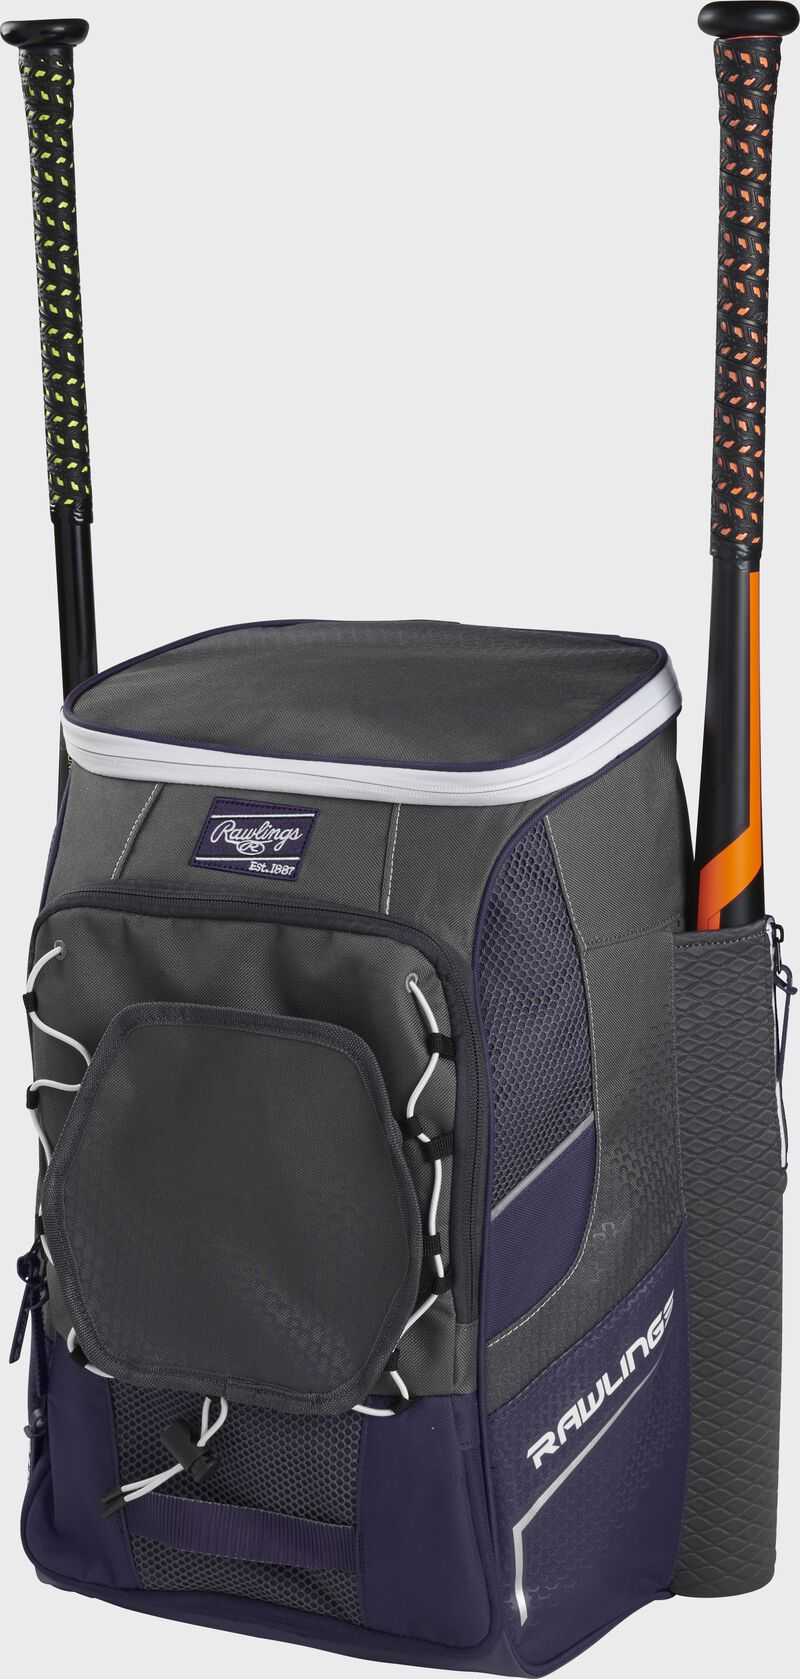 Front right angle view of a purple Impulse backpack with two bats in the side sleeves - SKU: IMPLSE-PU